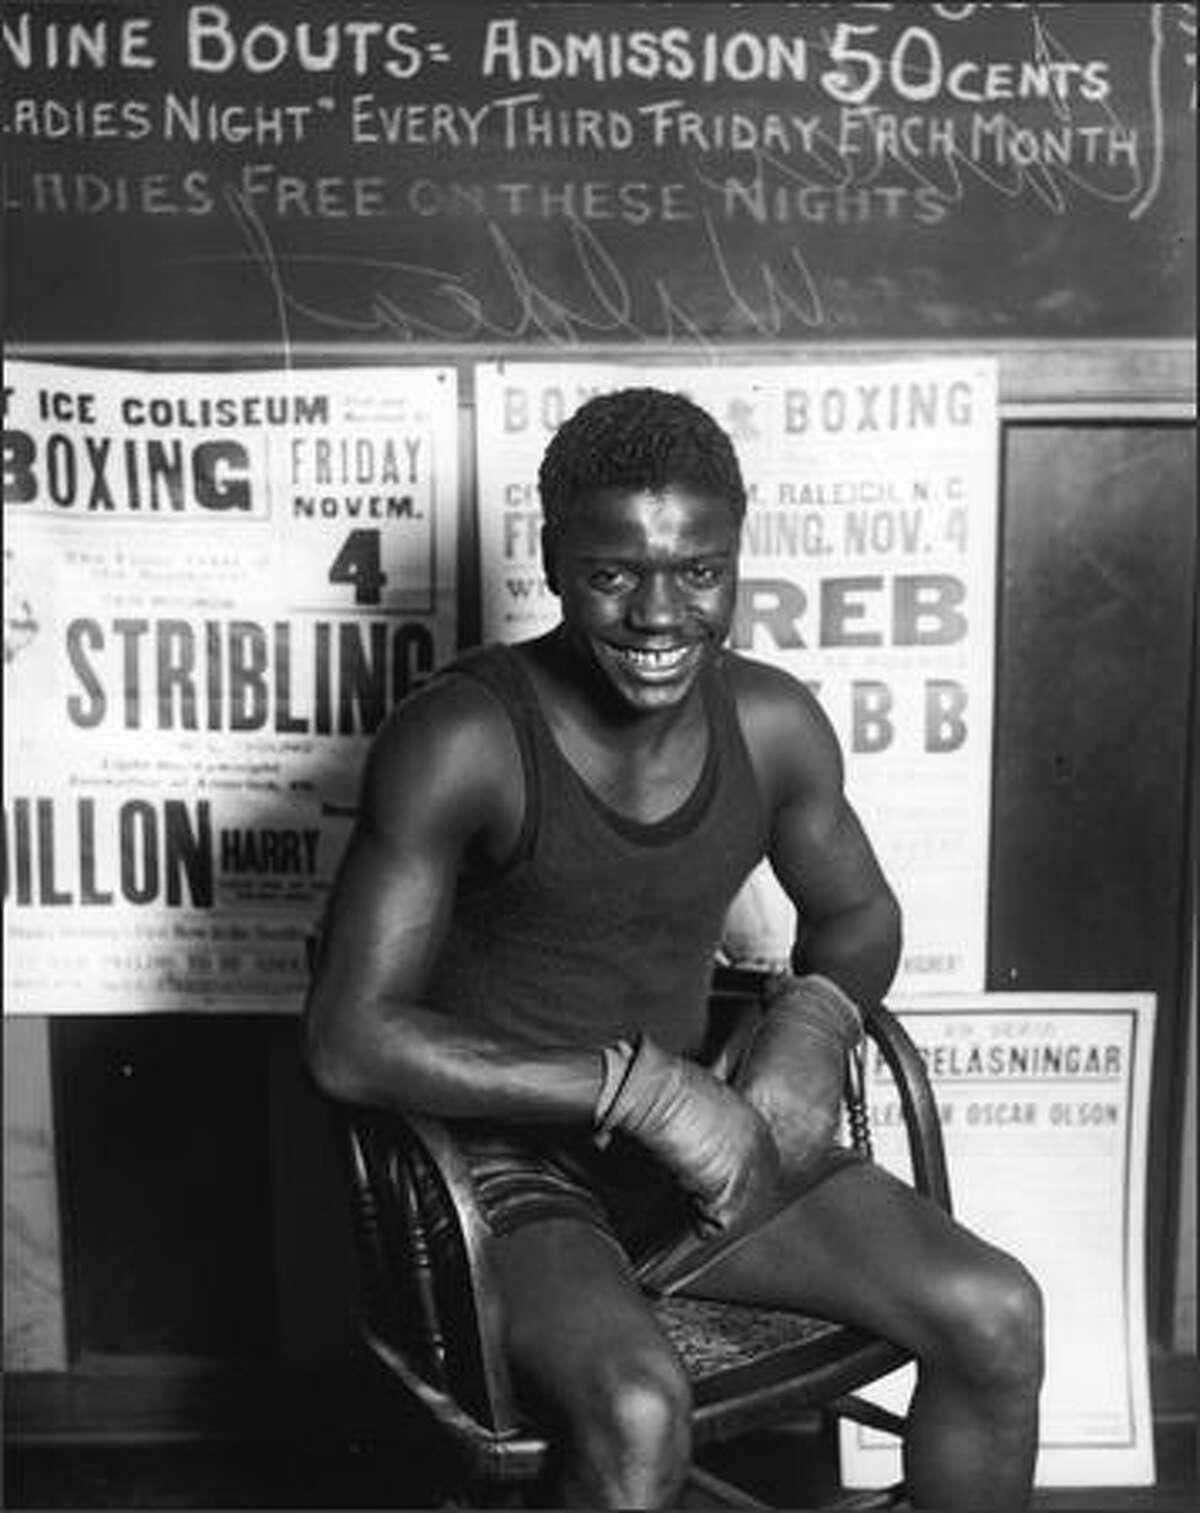 Leslie Earnest 'Wildcat' Carter began boxing at the age of 14, about the same time he moved to Seattle from Edmonton, Alberta. As a young man, he fought several veteran boxers and later became a professional boxer in the mid-1920s. He boxed internationally until the beginning of World War II when he enlisted in the Army and served as a physical education instructor until his honorable discharge. He did not box again. This photo was taken during the full-swing of his career at the Crystal Pool when he fought and beat veteran boxer Vic Foley on Nov. 22, 1927. (Seattle Post-Intelligencer Collection, Museum of History & Industry 1986.5G.262)